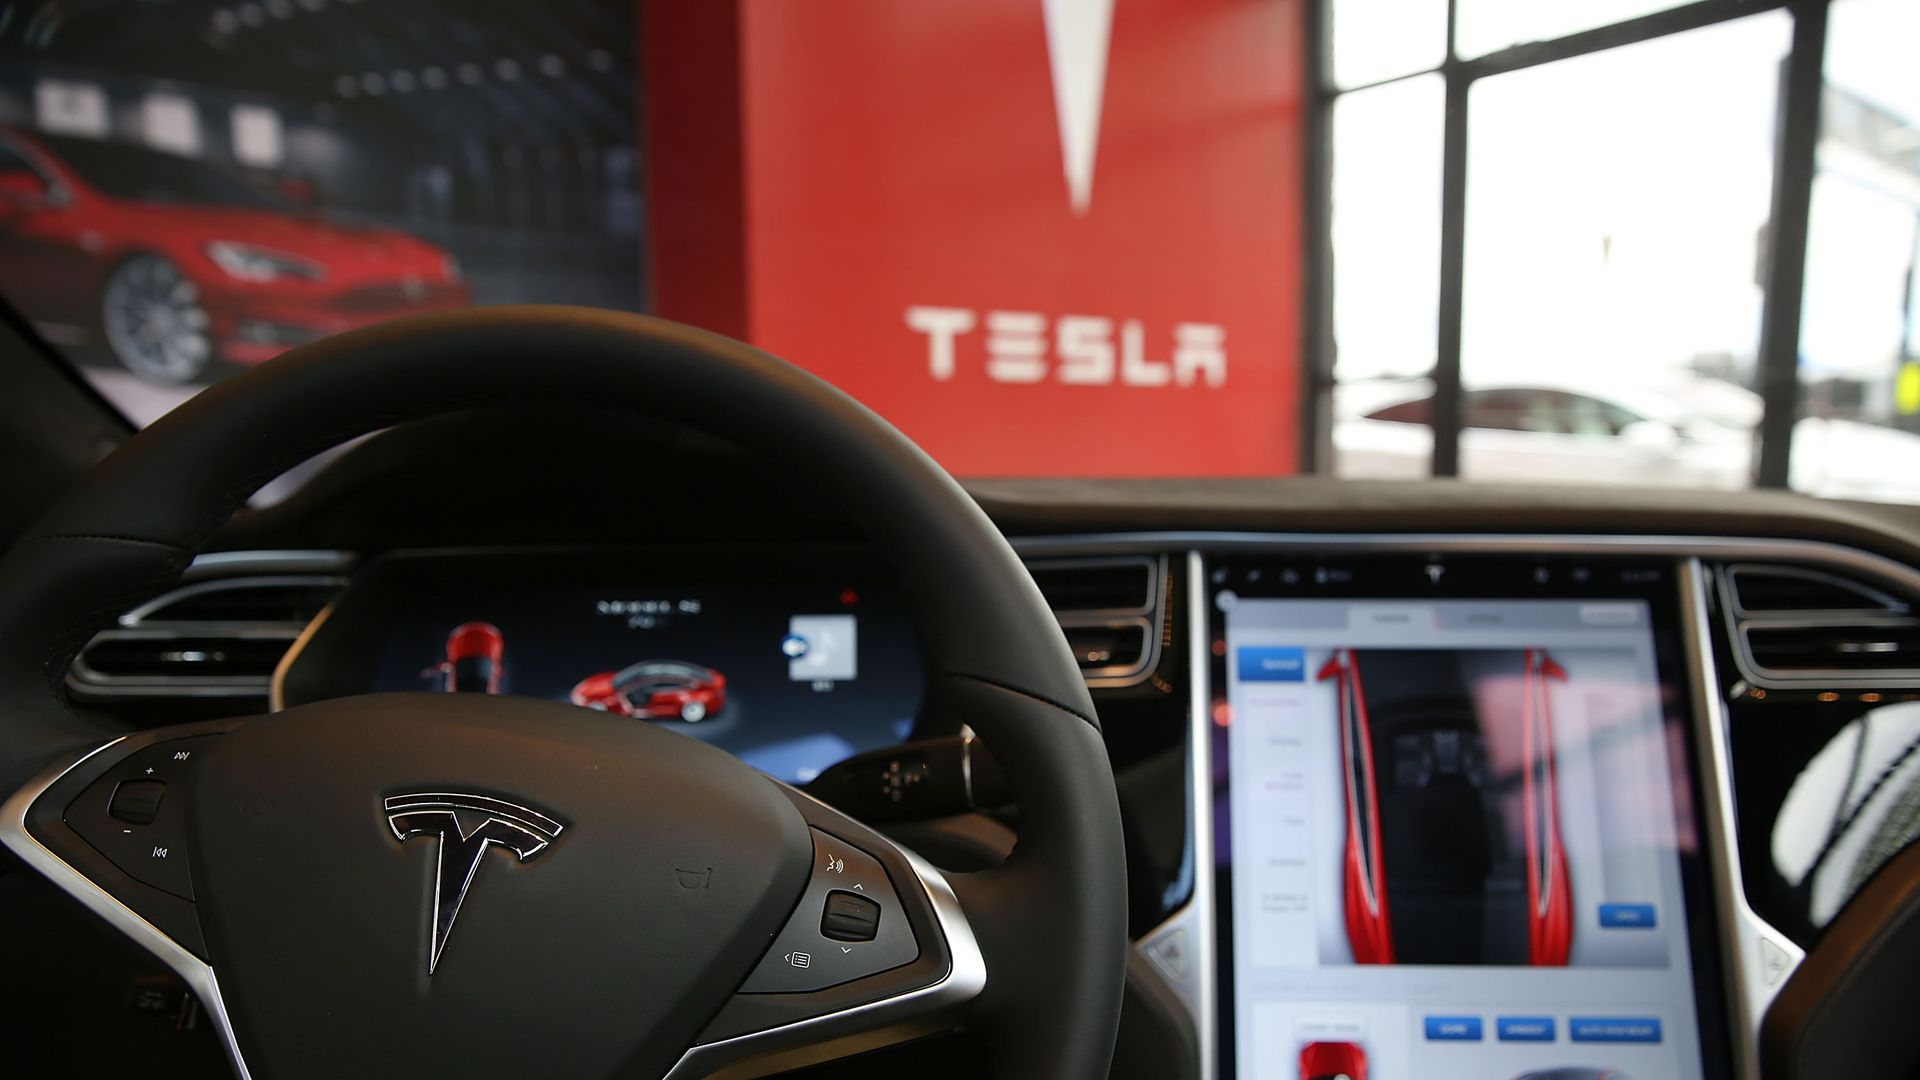 View from inside Tesla car with autopilot feature